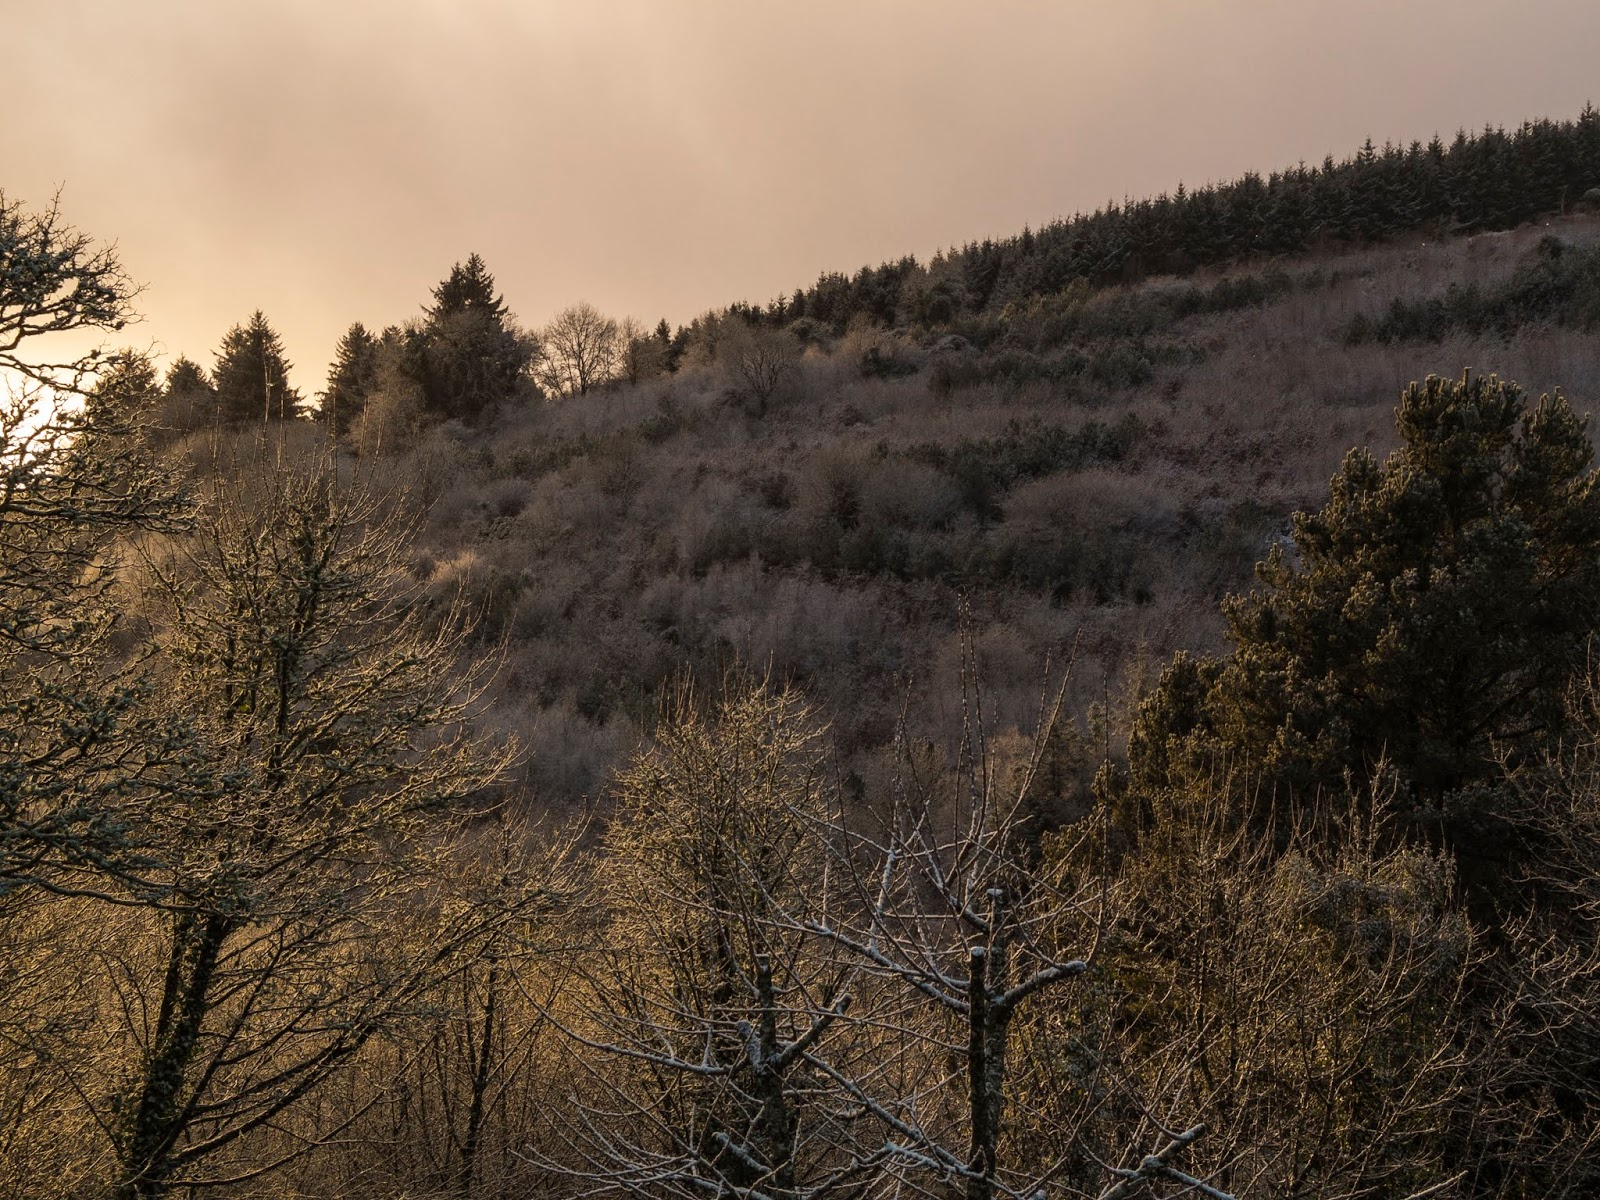 Snowy mountain side in North County Cork during a sunset.